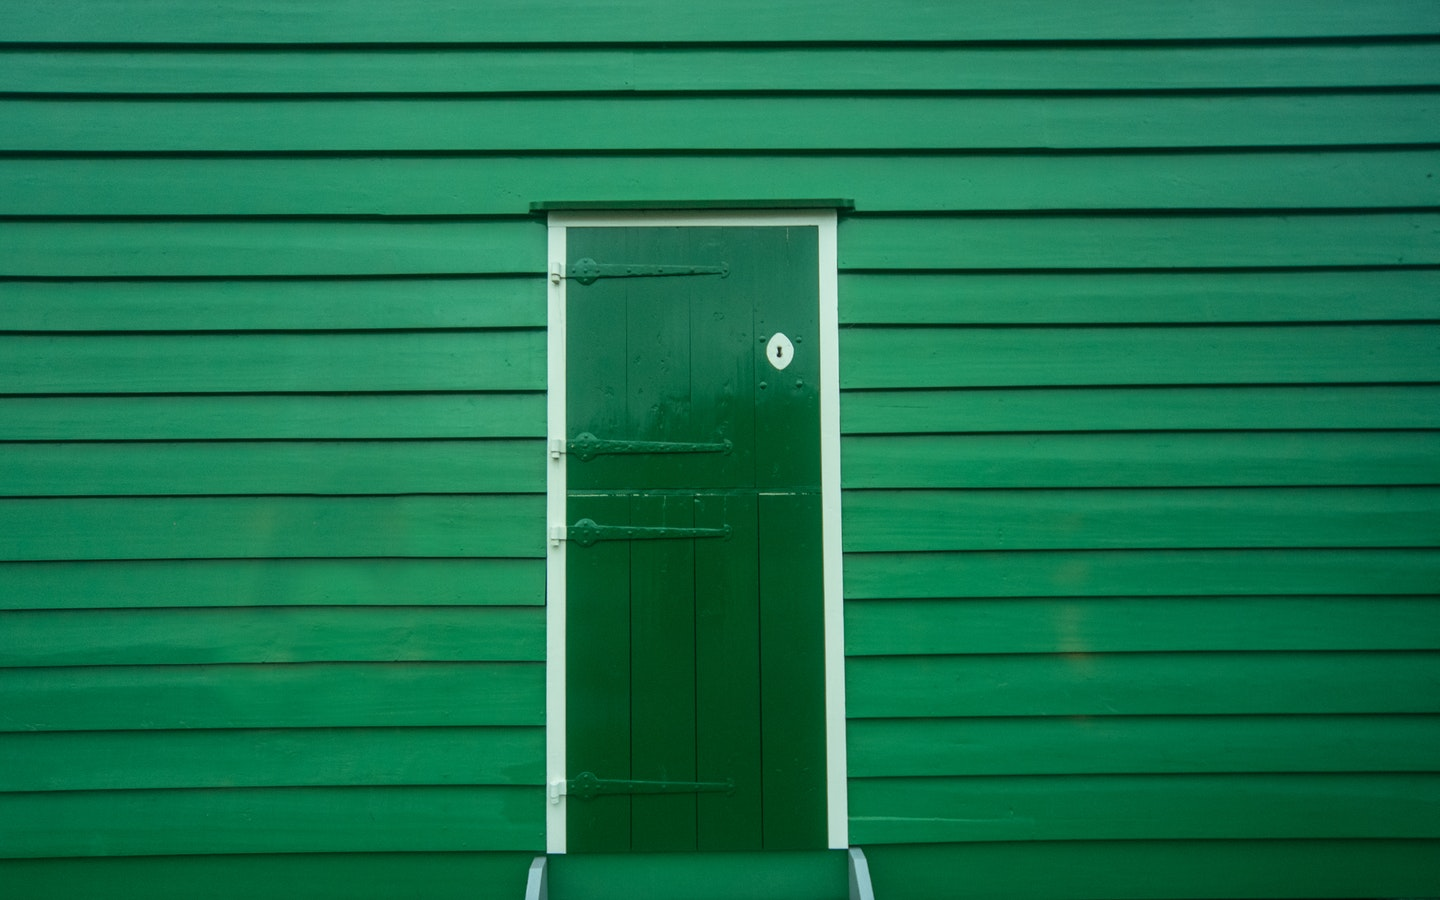 Green door and wooden green house